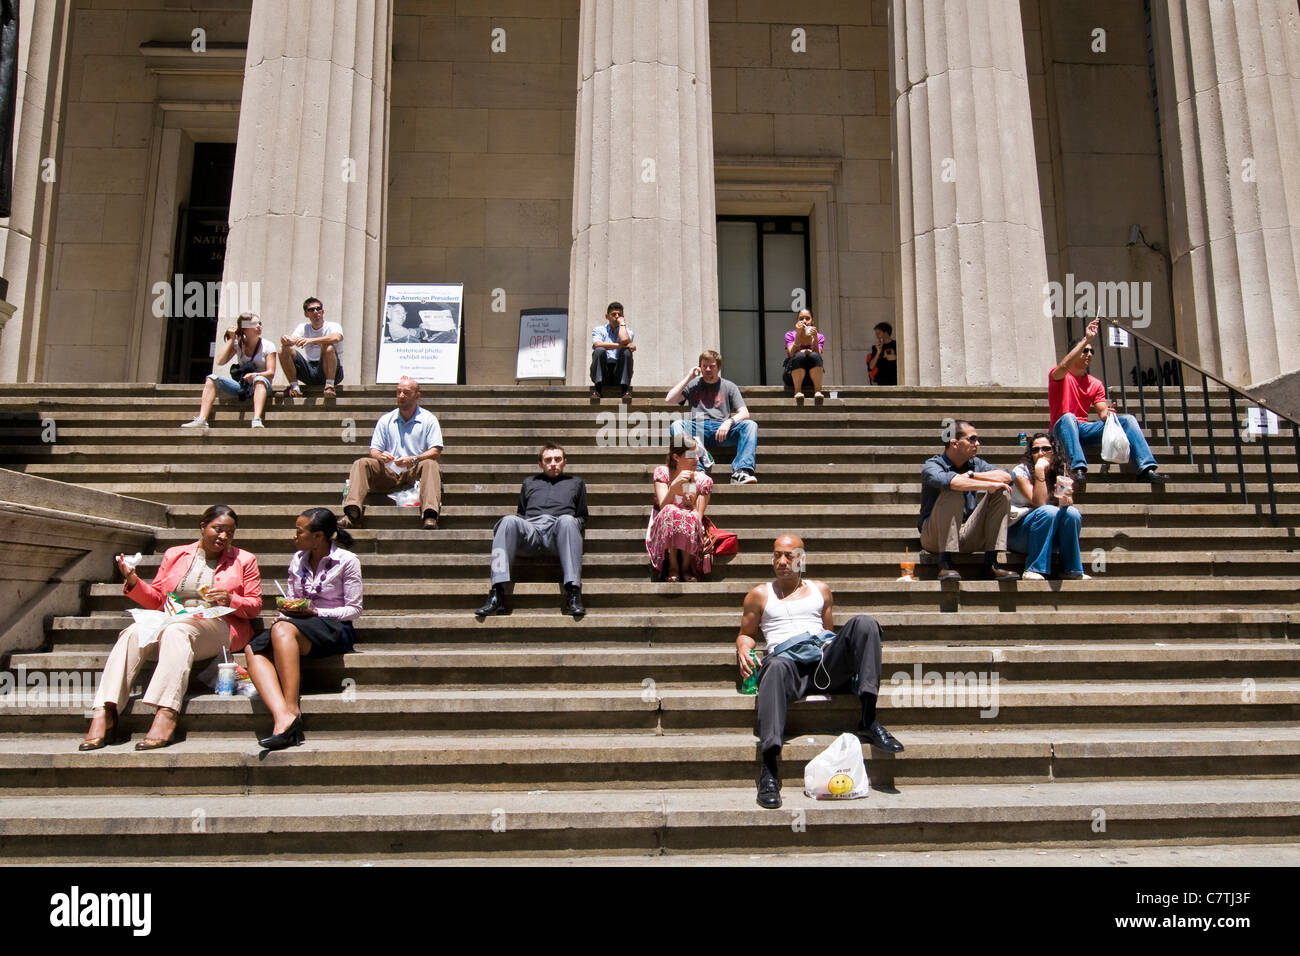 USA, New York City, New York Stock Exchange people sitting on staircase - Stock Image